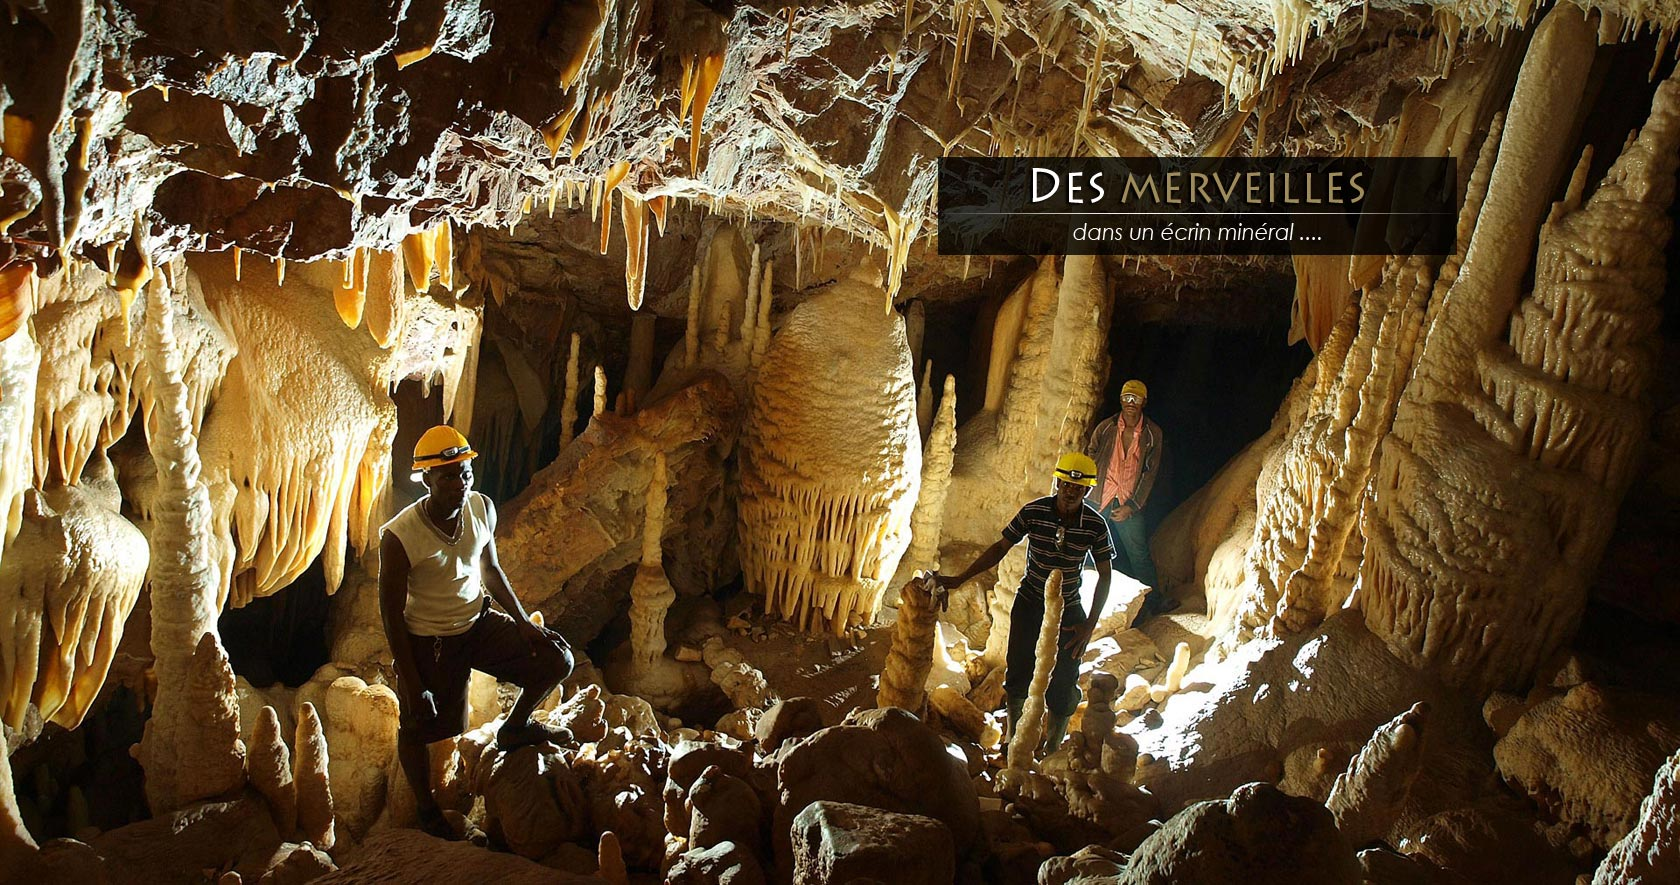 Grotte Marie-Jeanne, Port-a-Piment